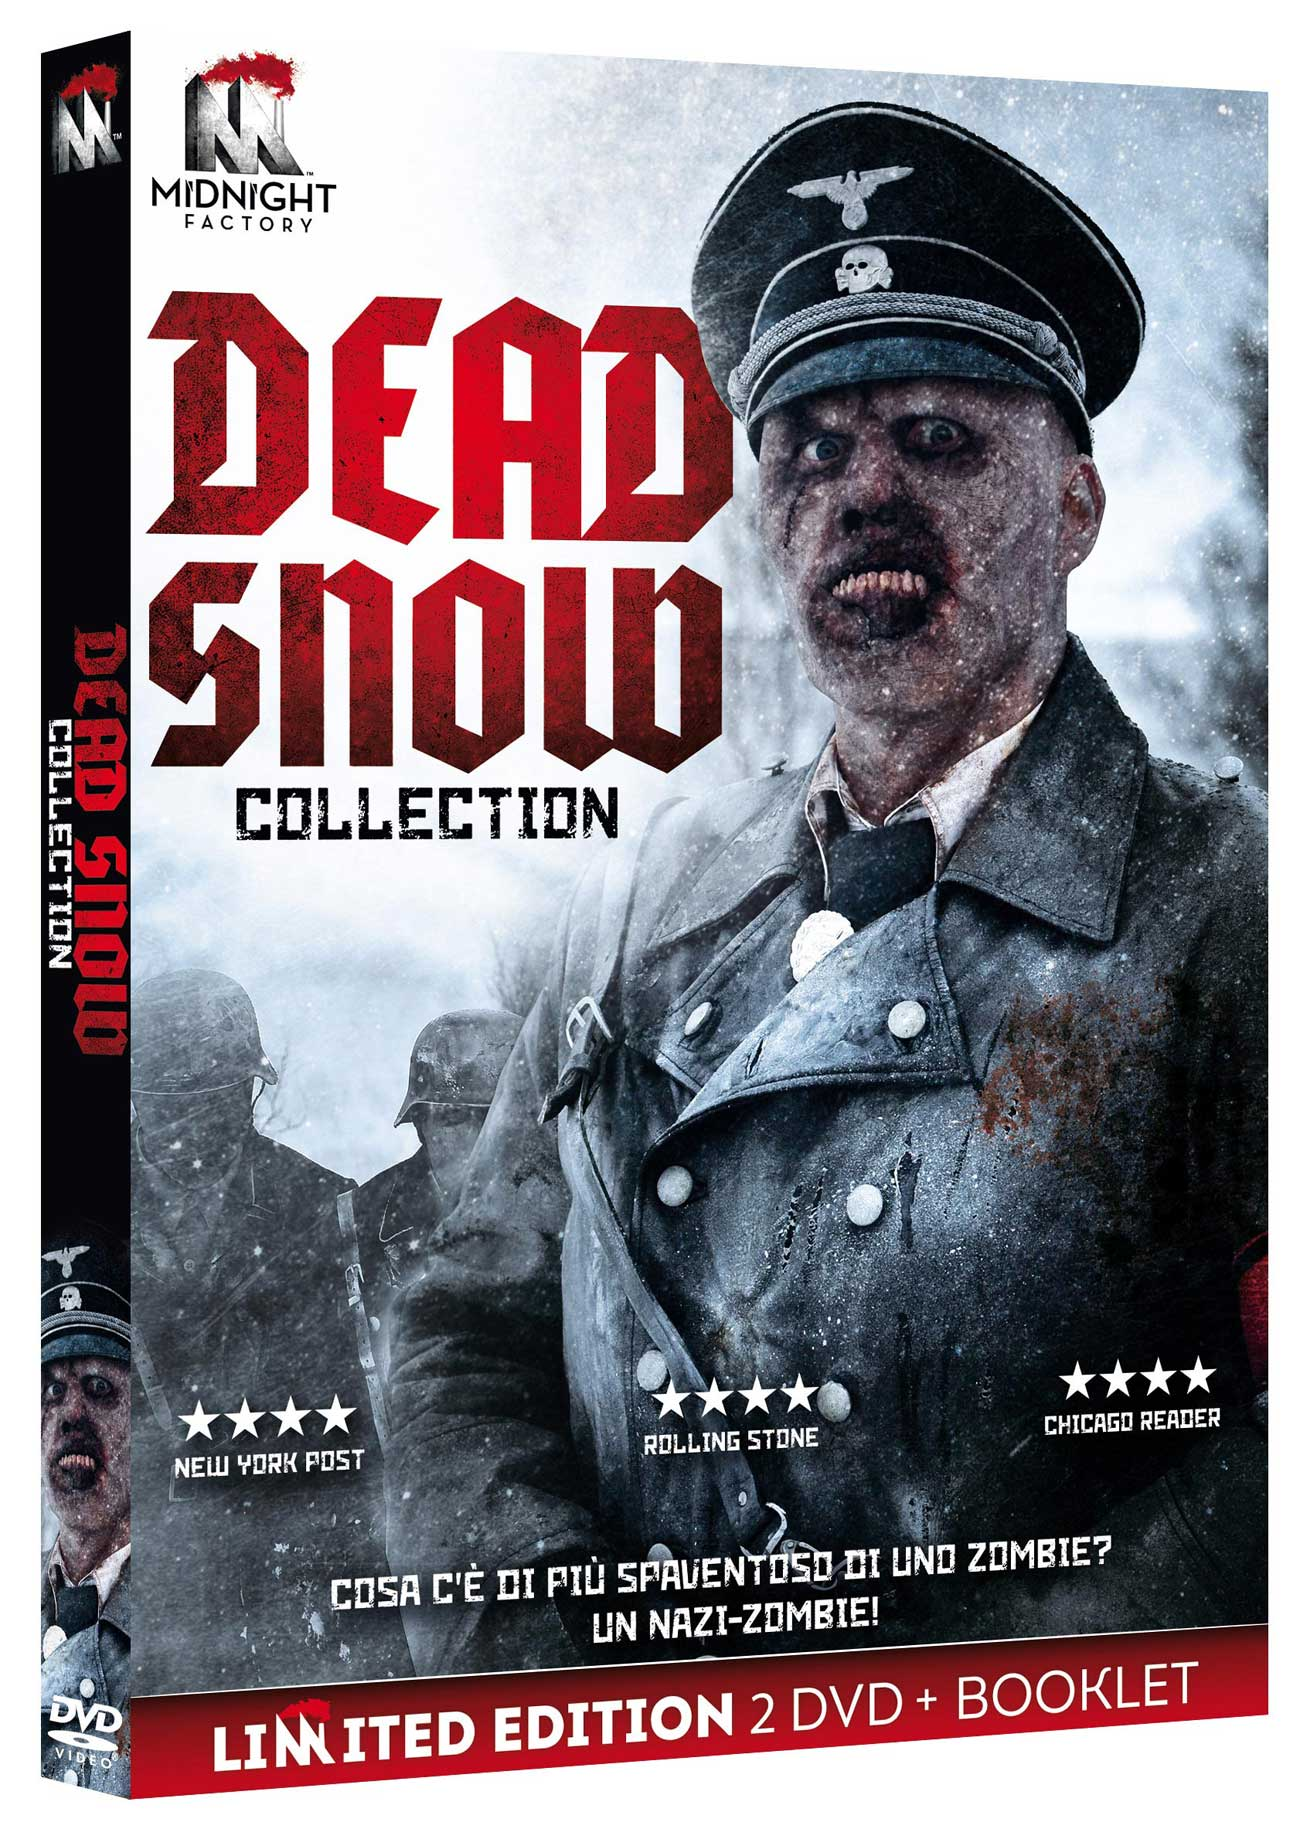 DEAD SNOW COLLECTION (LTD EDITION) (2 DVD+BOOKLET) (DVD)